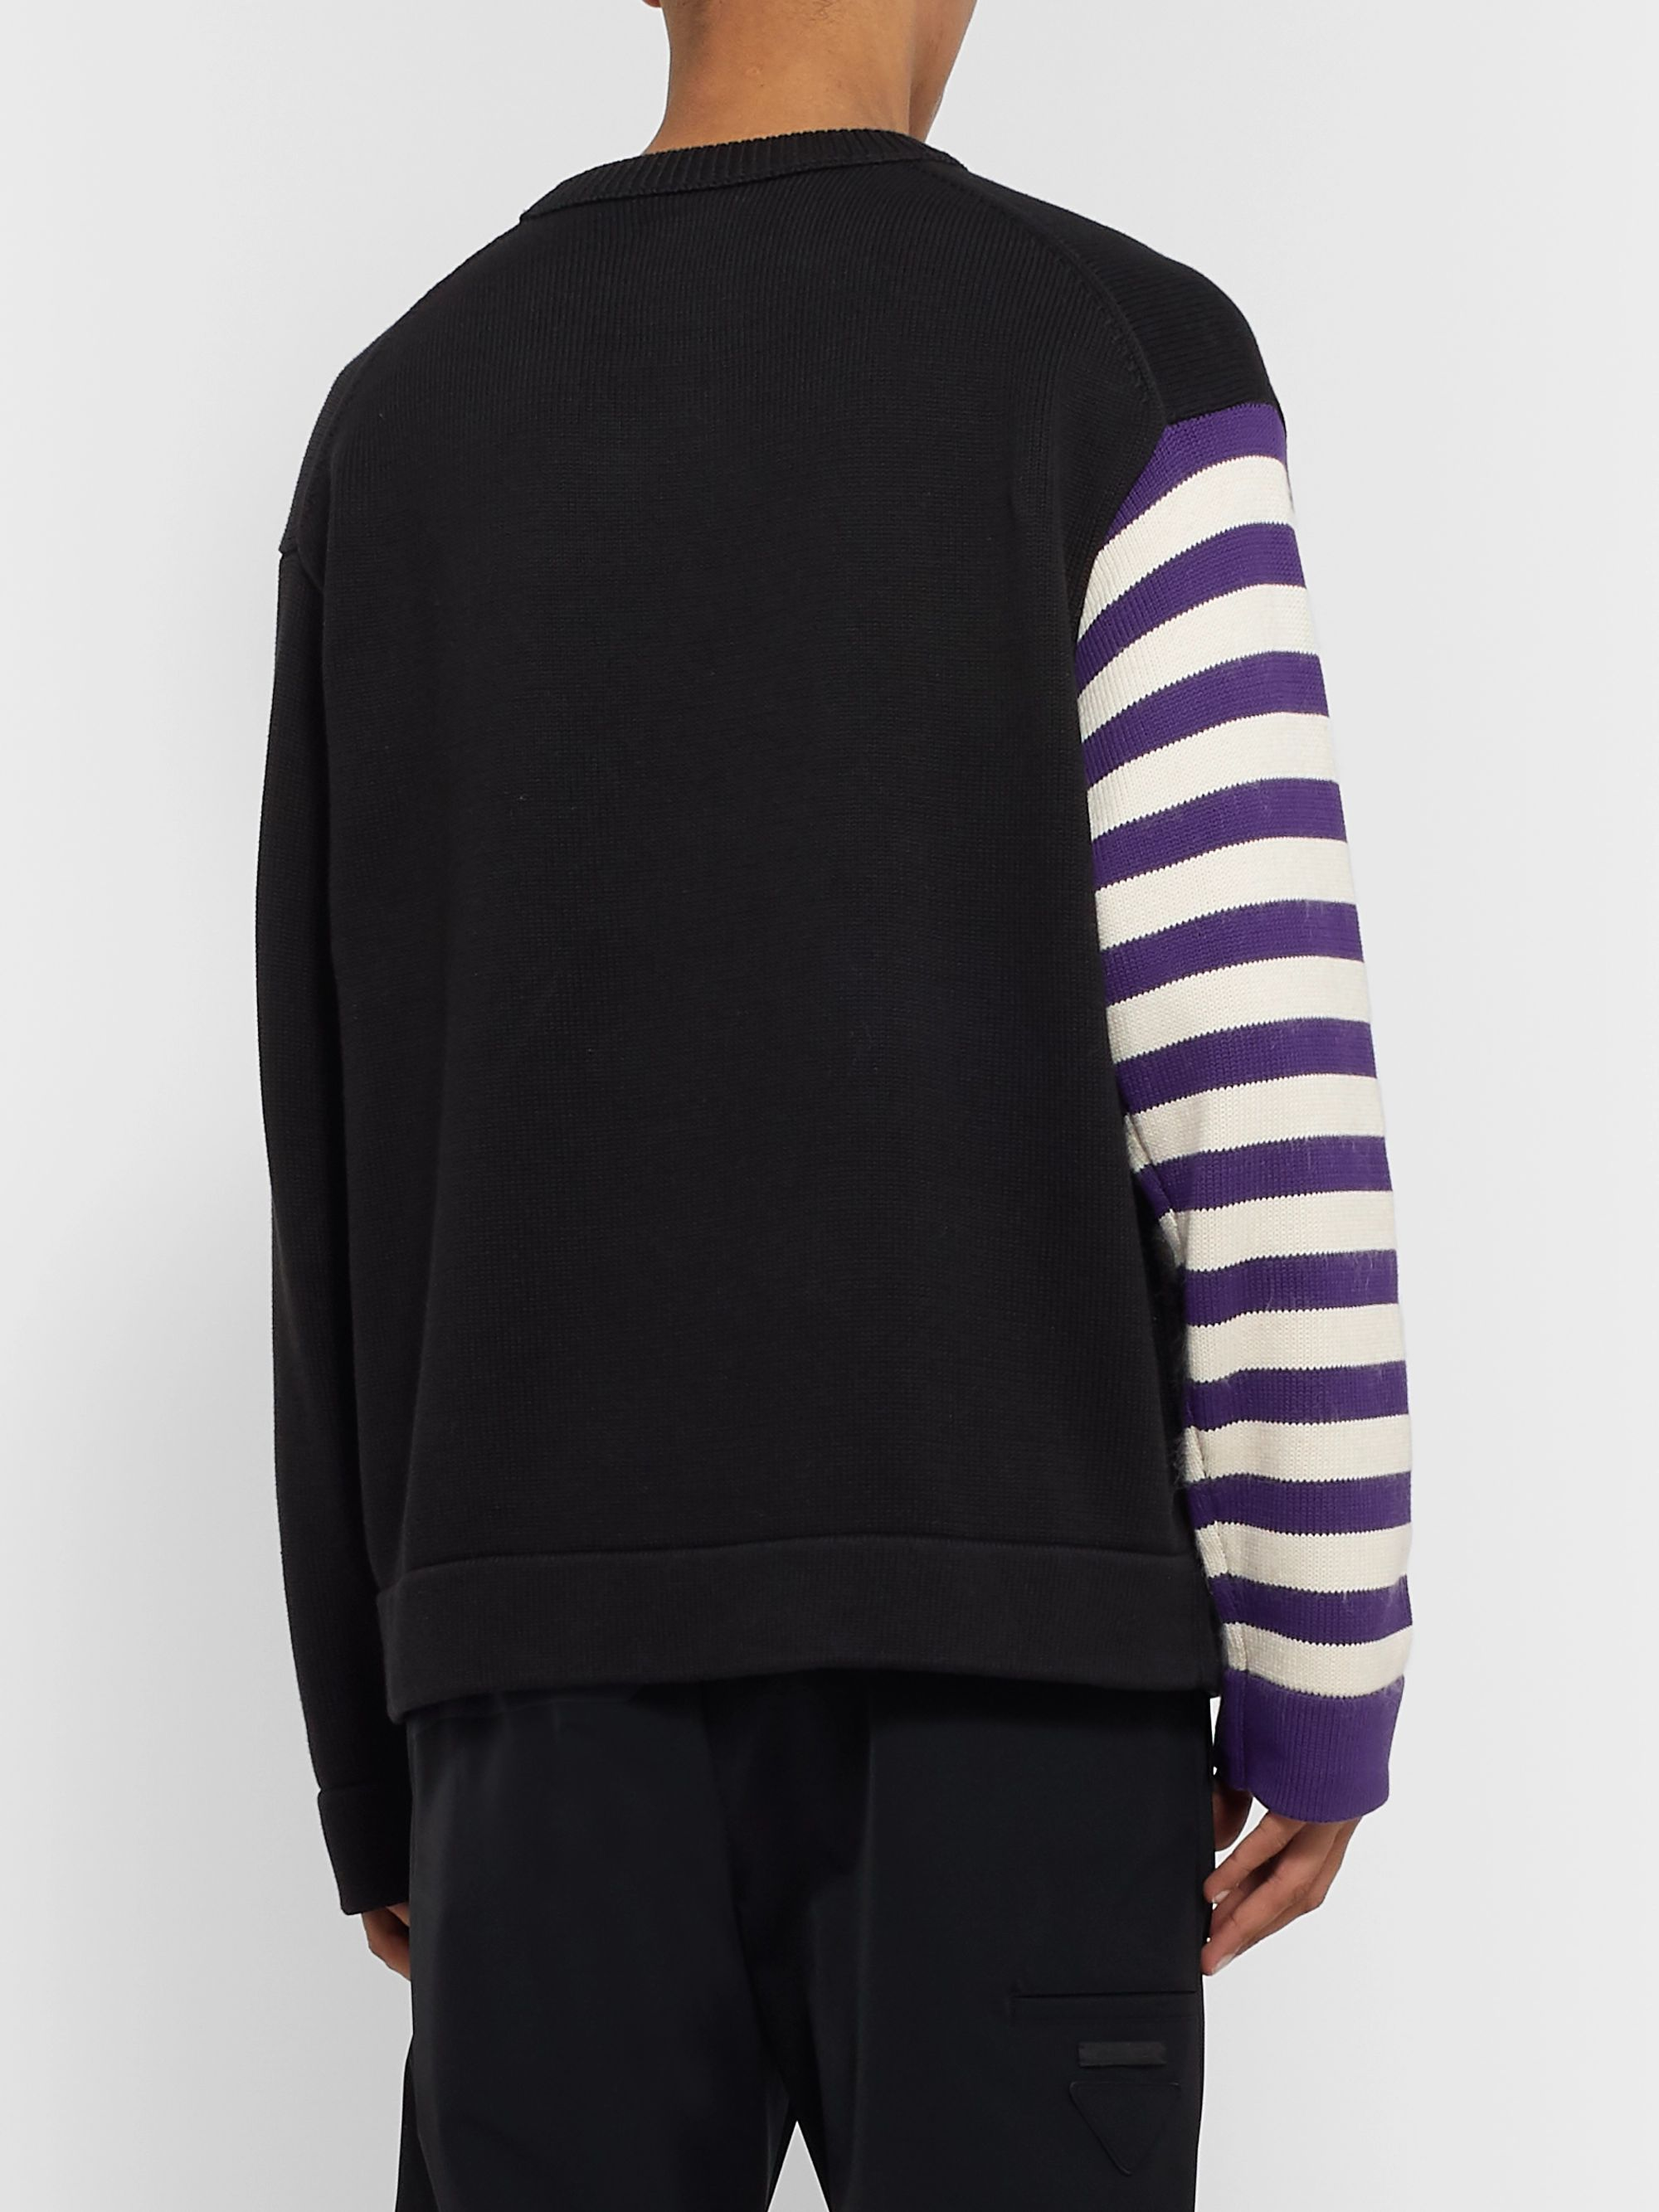 Acne Studios + Monster in My Pocket Konor Cotton and Wool and Cashmere-Blend Intarsia Sweater